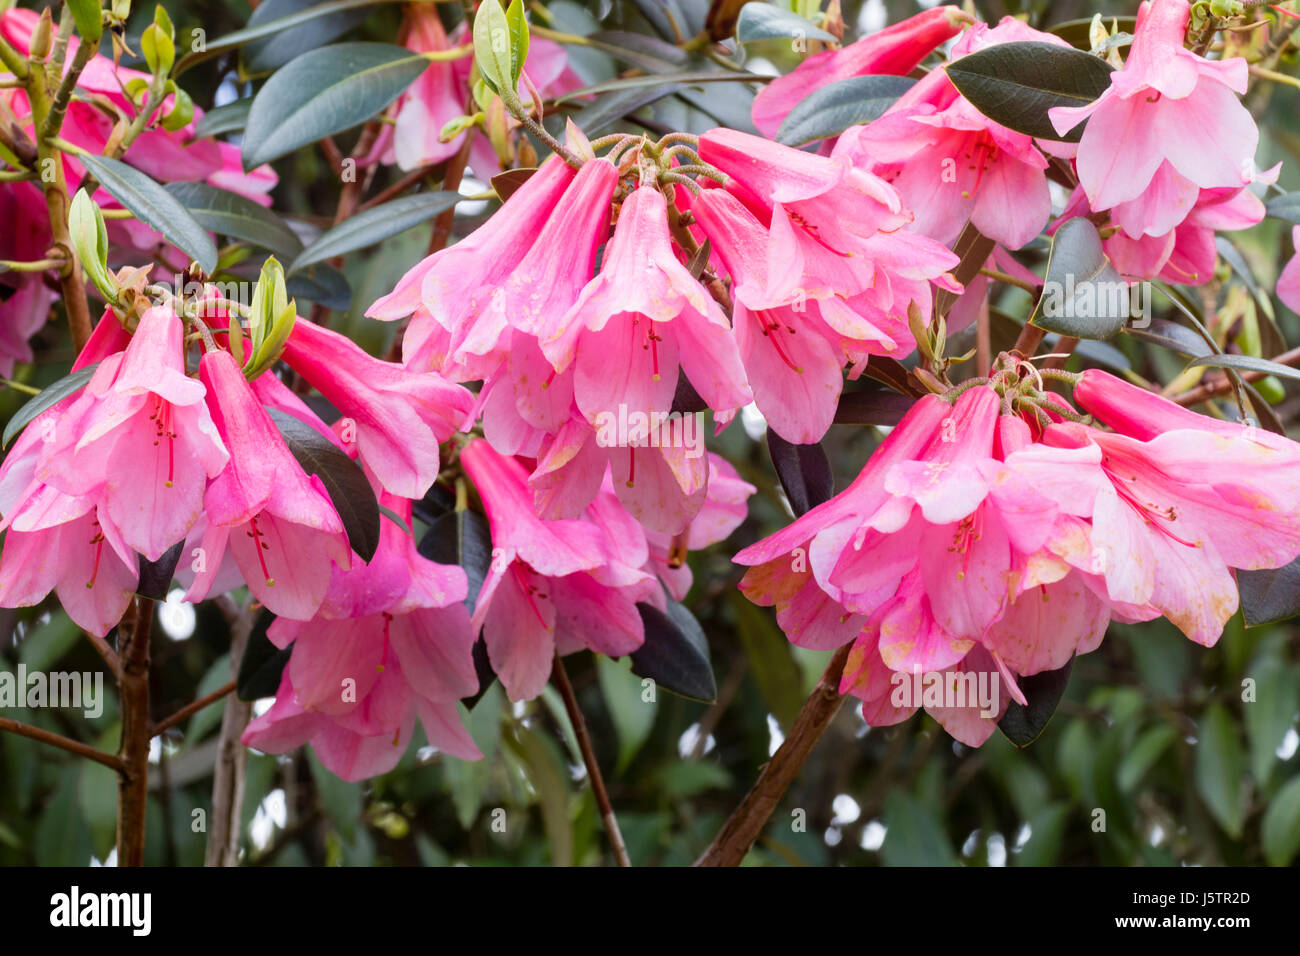 Hanging pink bell flowers of the may blooming evergreen shrub stock hanging pink bell flowers of the may blooming evergreen shrub rhododendron cinnabarinum waterfall mightylinksfo